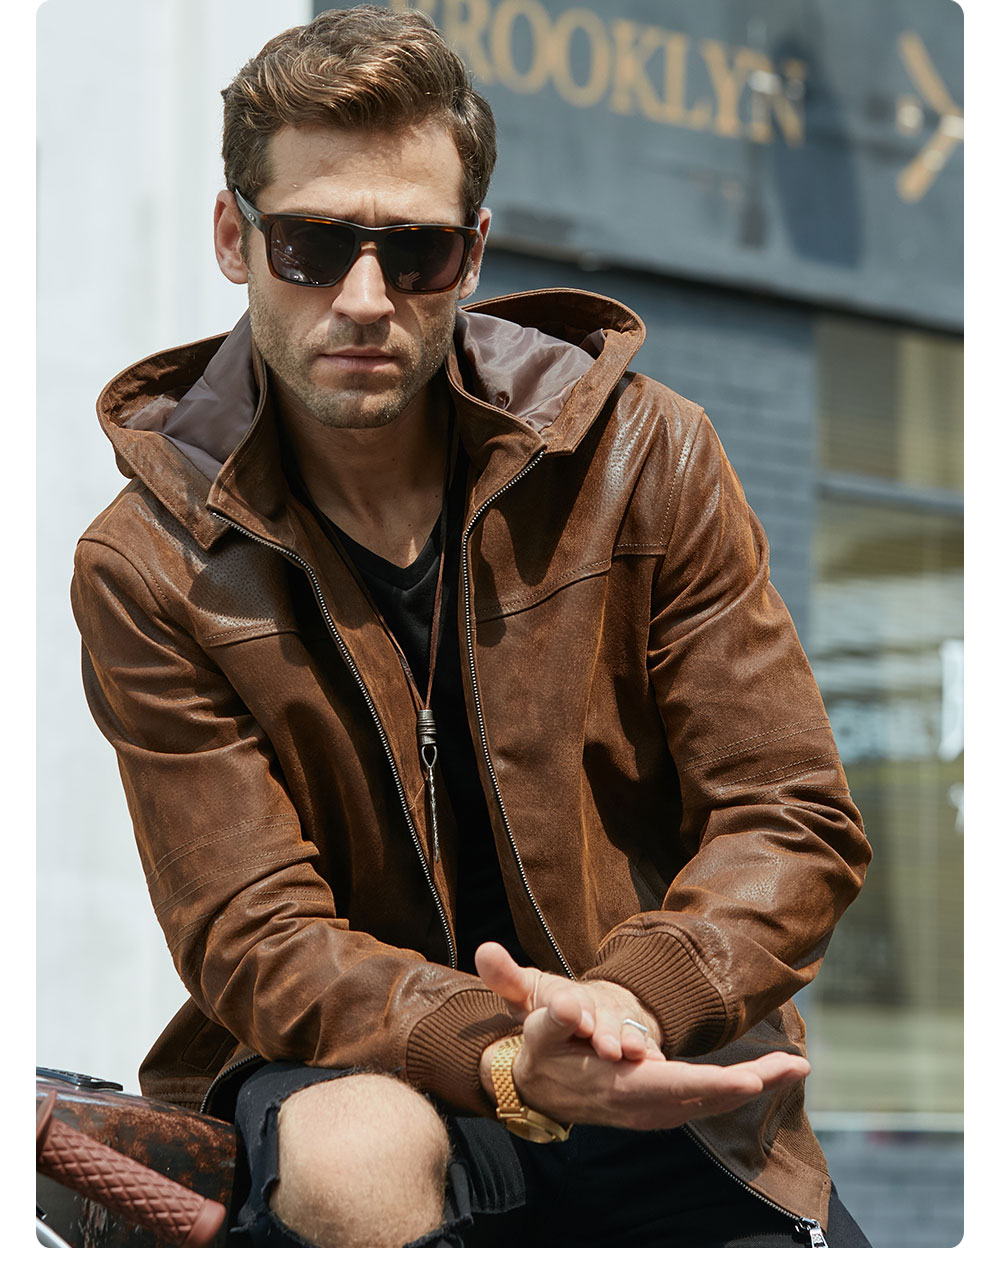 Ha0d084194d9d48d4a8b982c0af56da7aT New Men's Winter Jacket Made Of Genuine Pigskin Leather With A Hood, Pigskin Motorcycle Jacket, Natural Leather Jacket